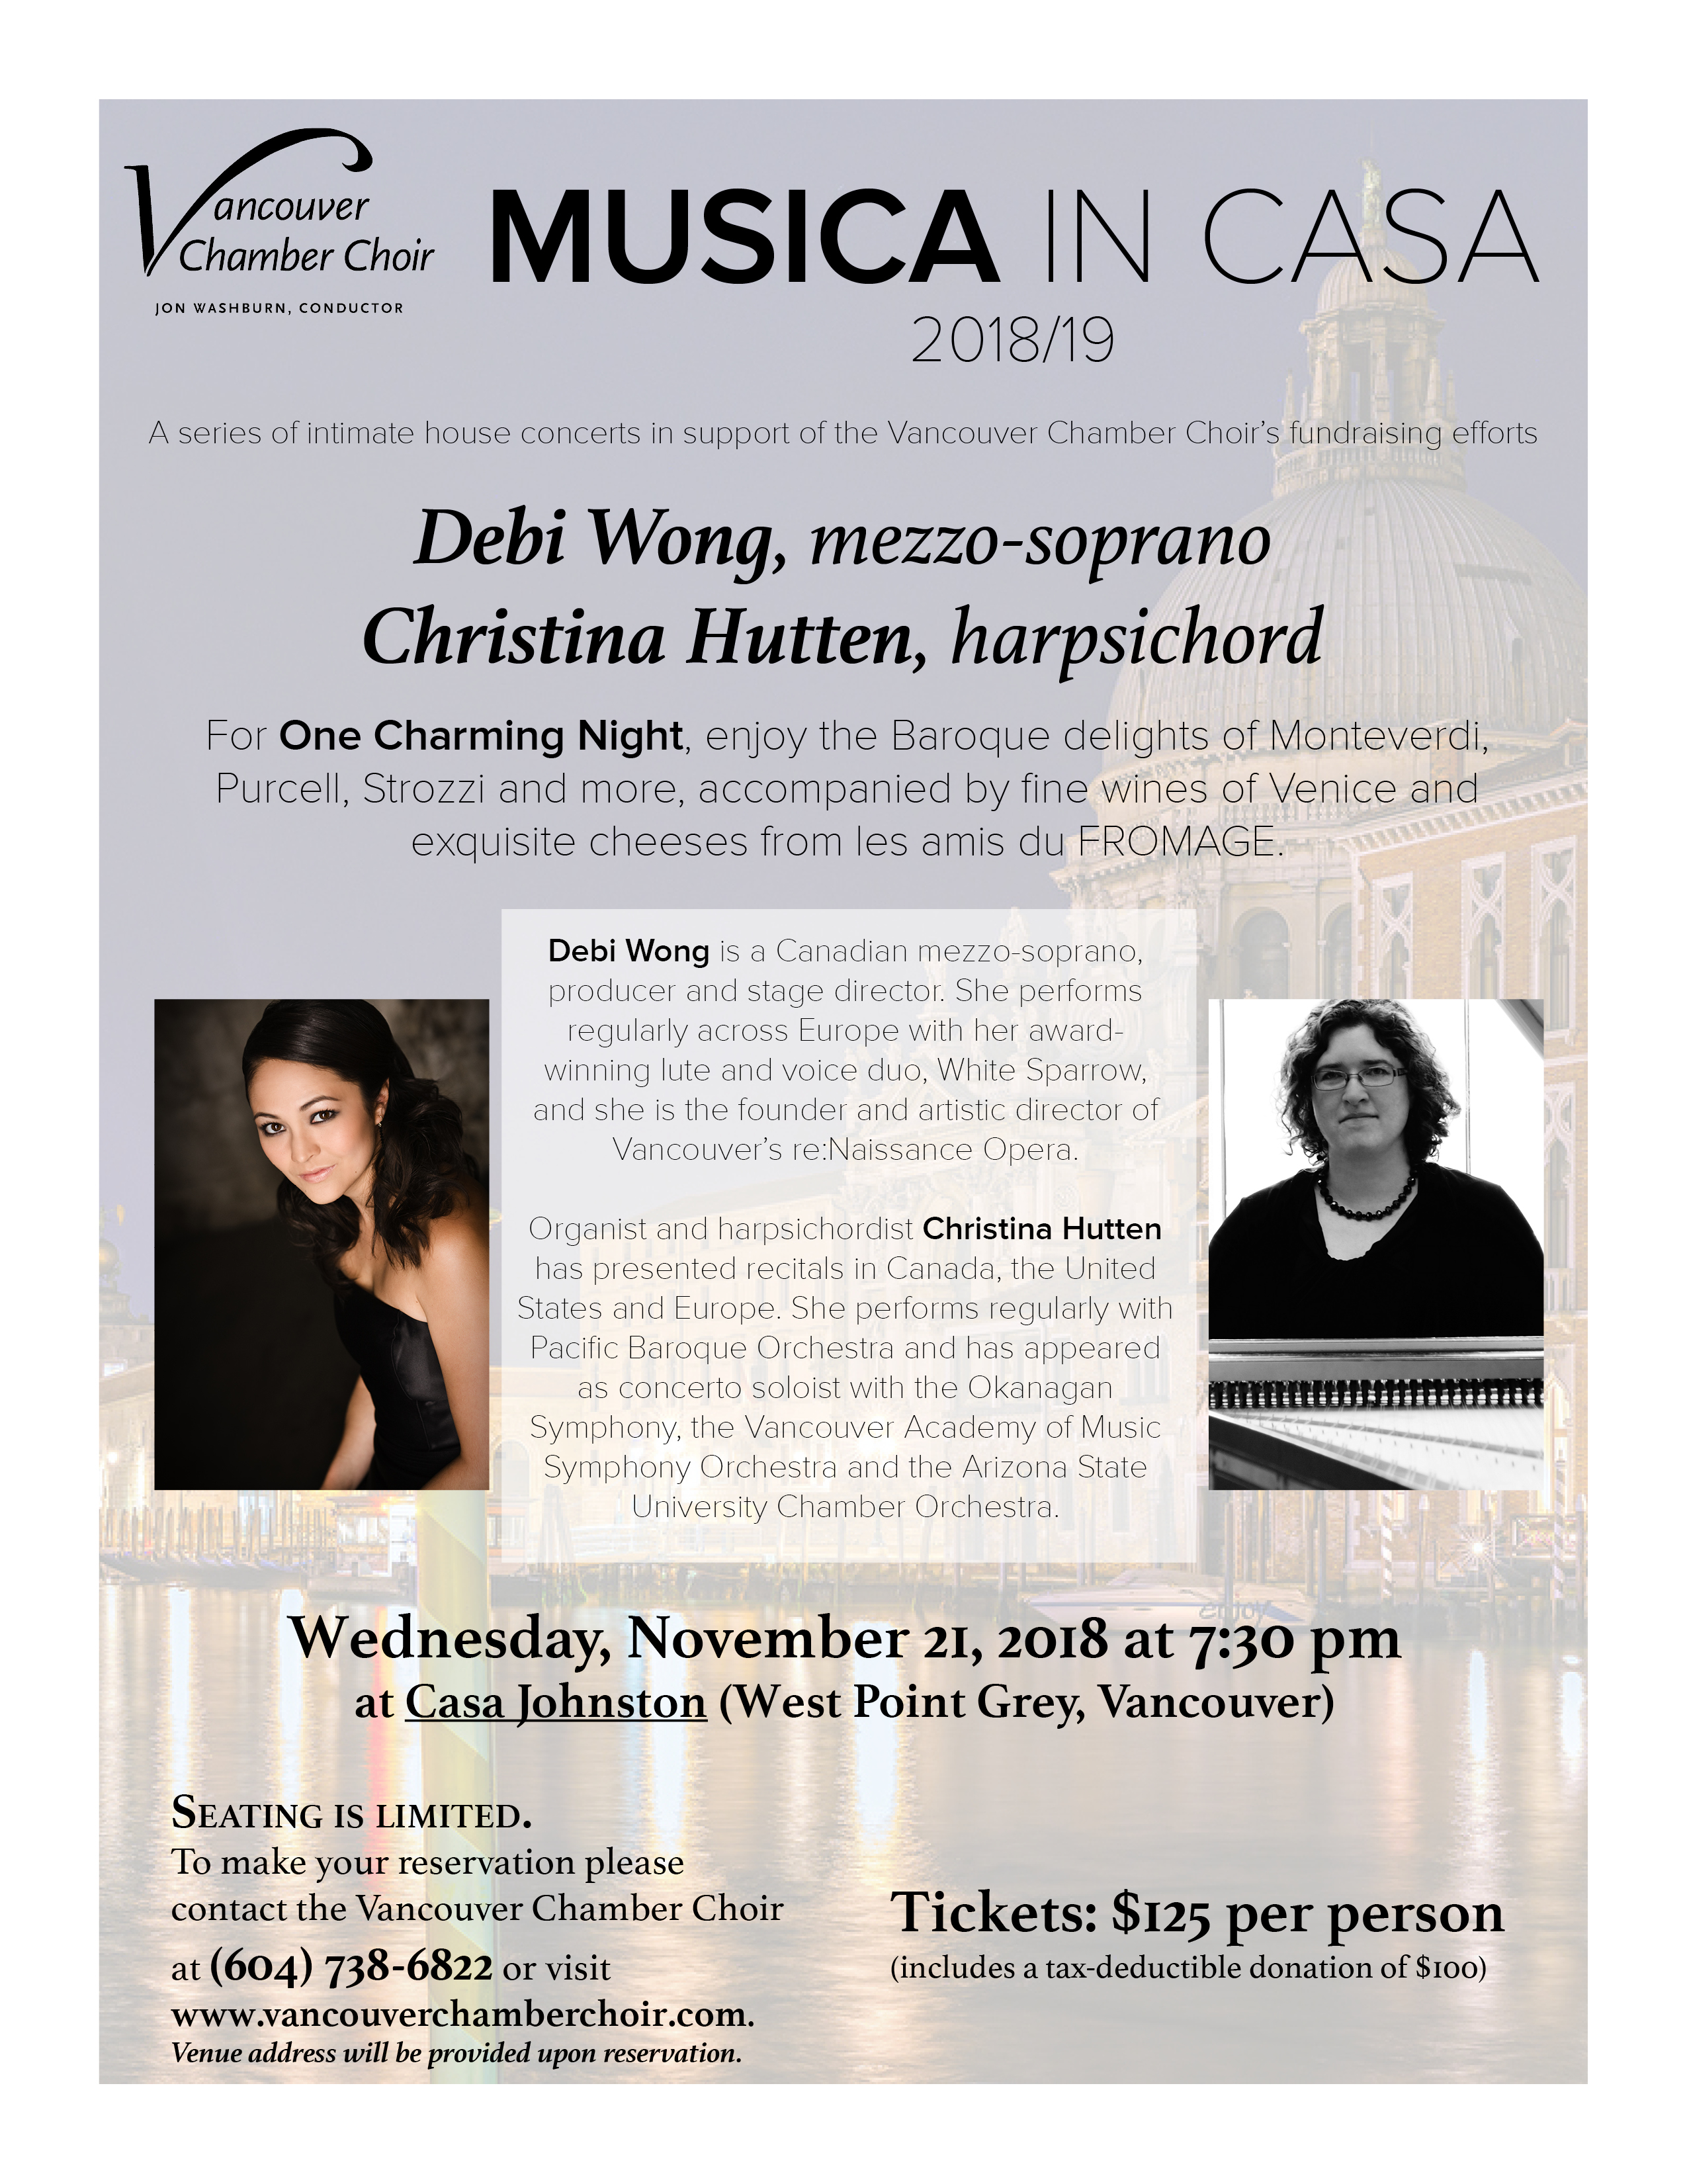 Musica in casa with Debi Wong and Christina Hutten